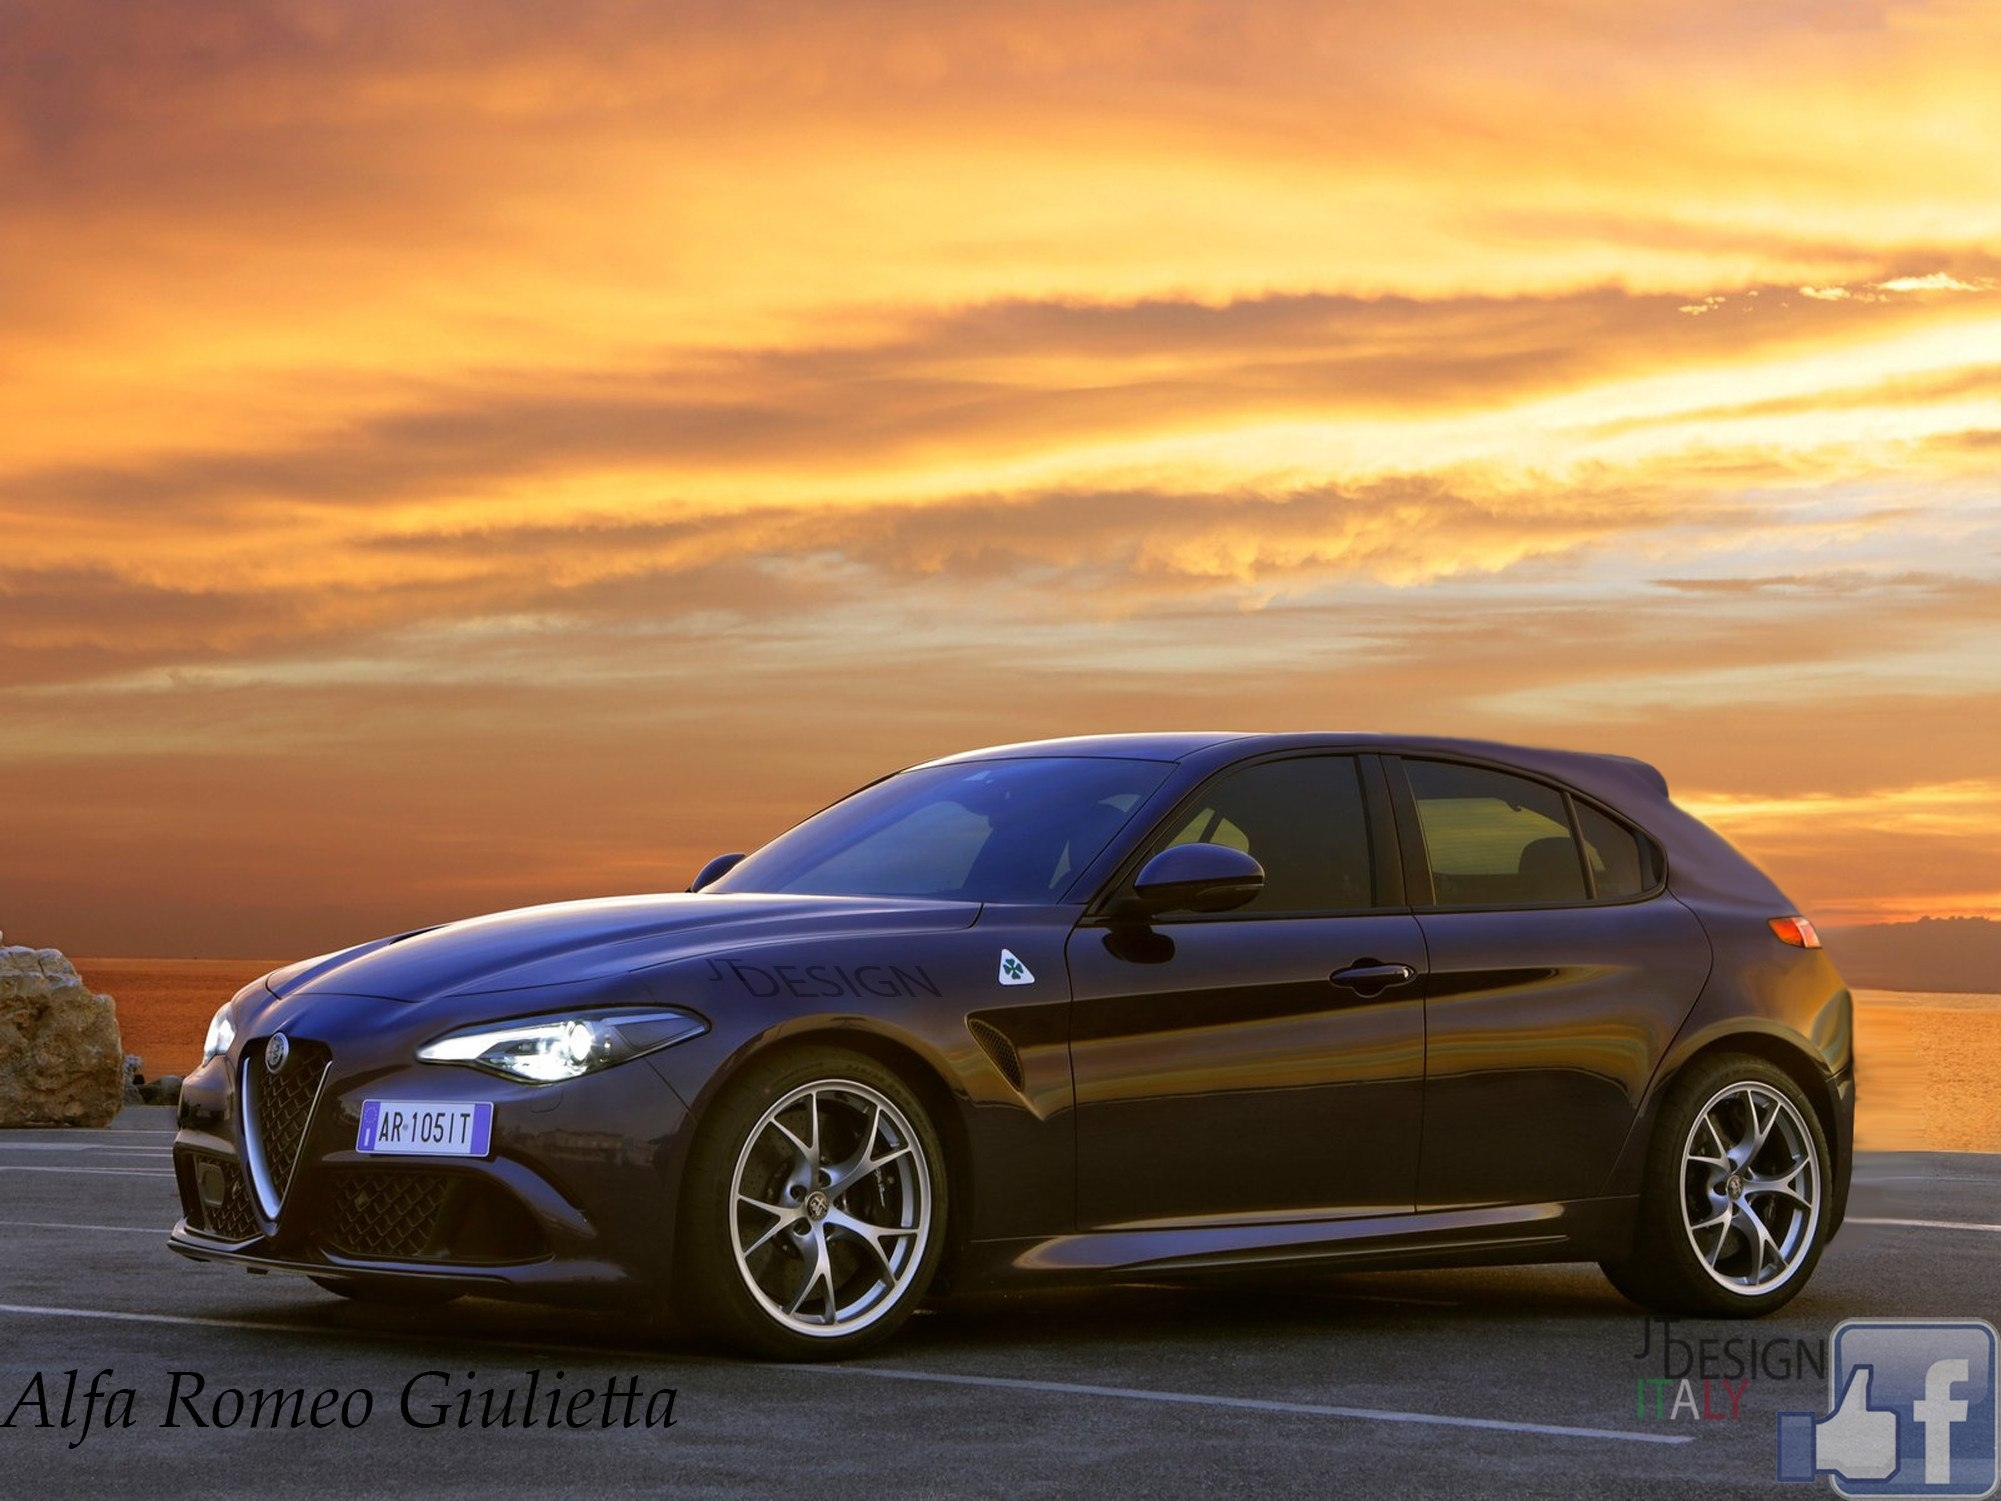 49 All New 2020 Alfa Romeo Giulia Exterior and Interior